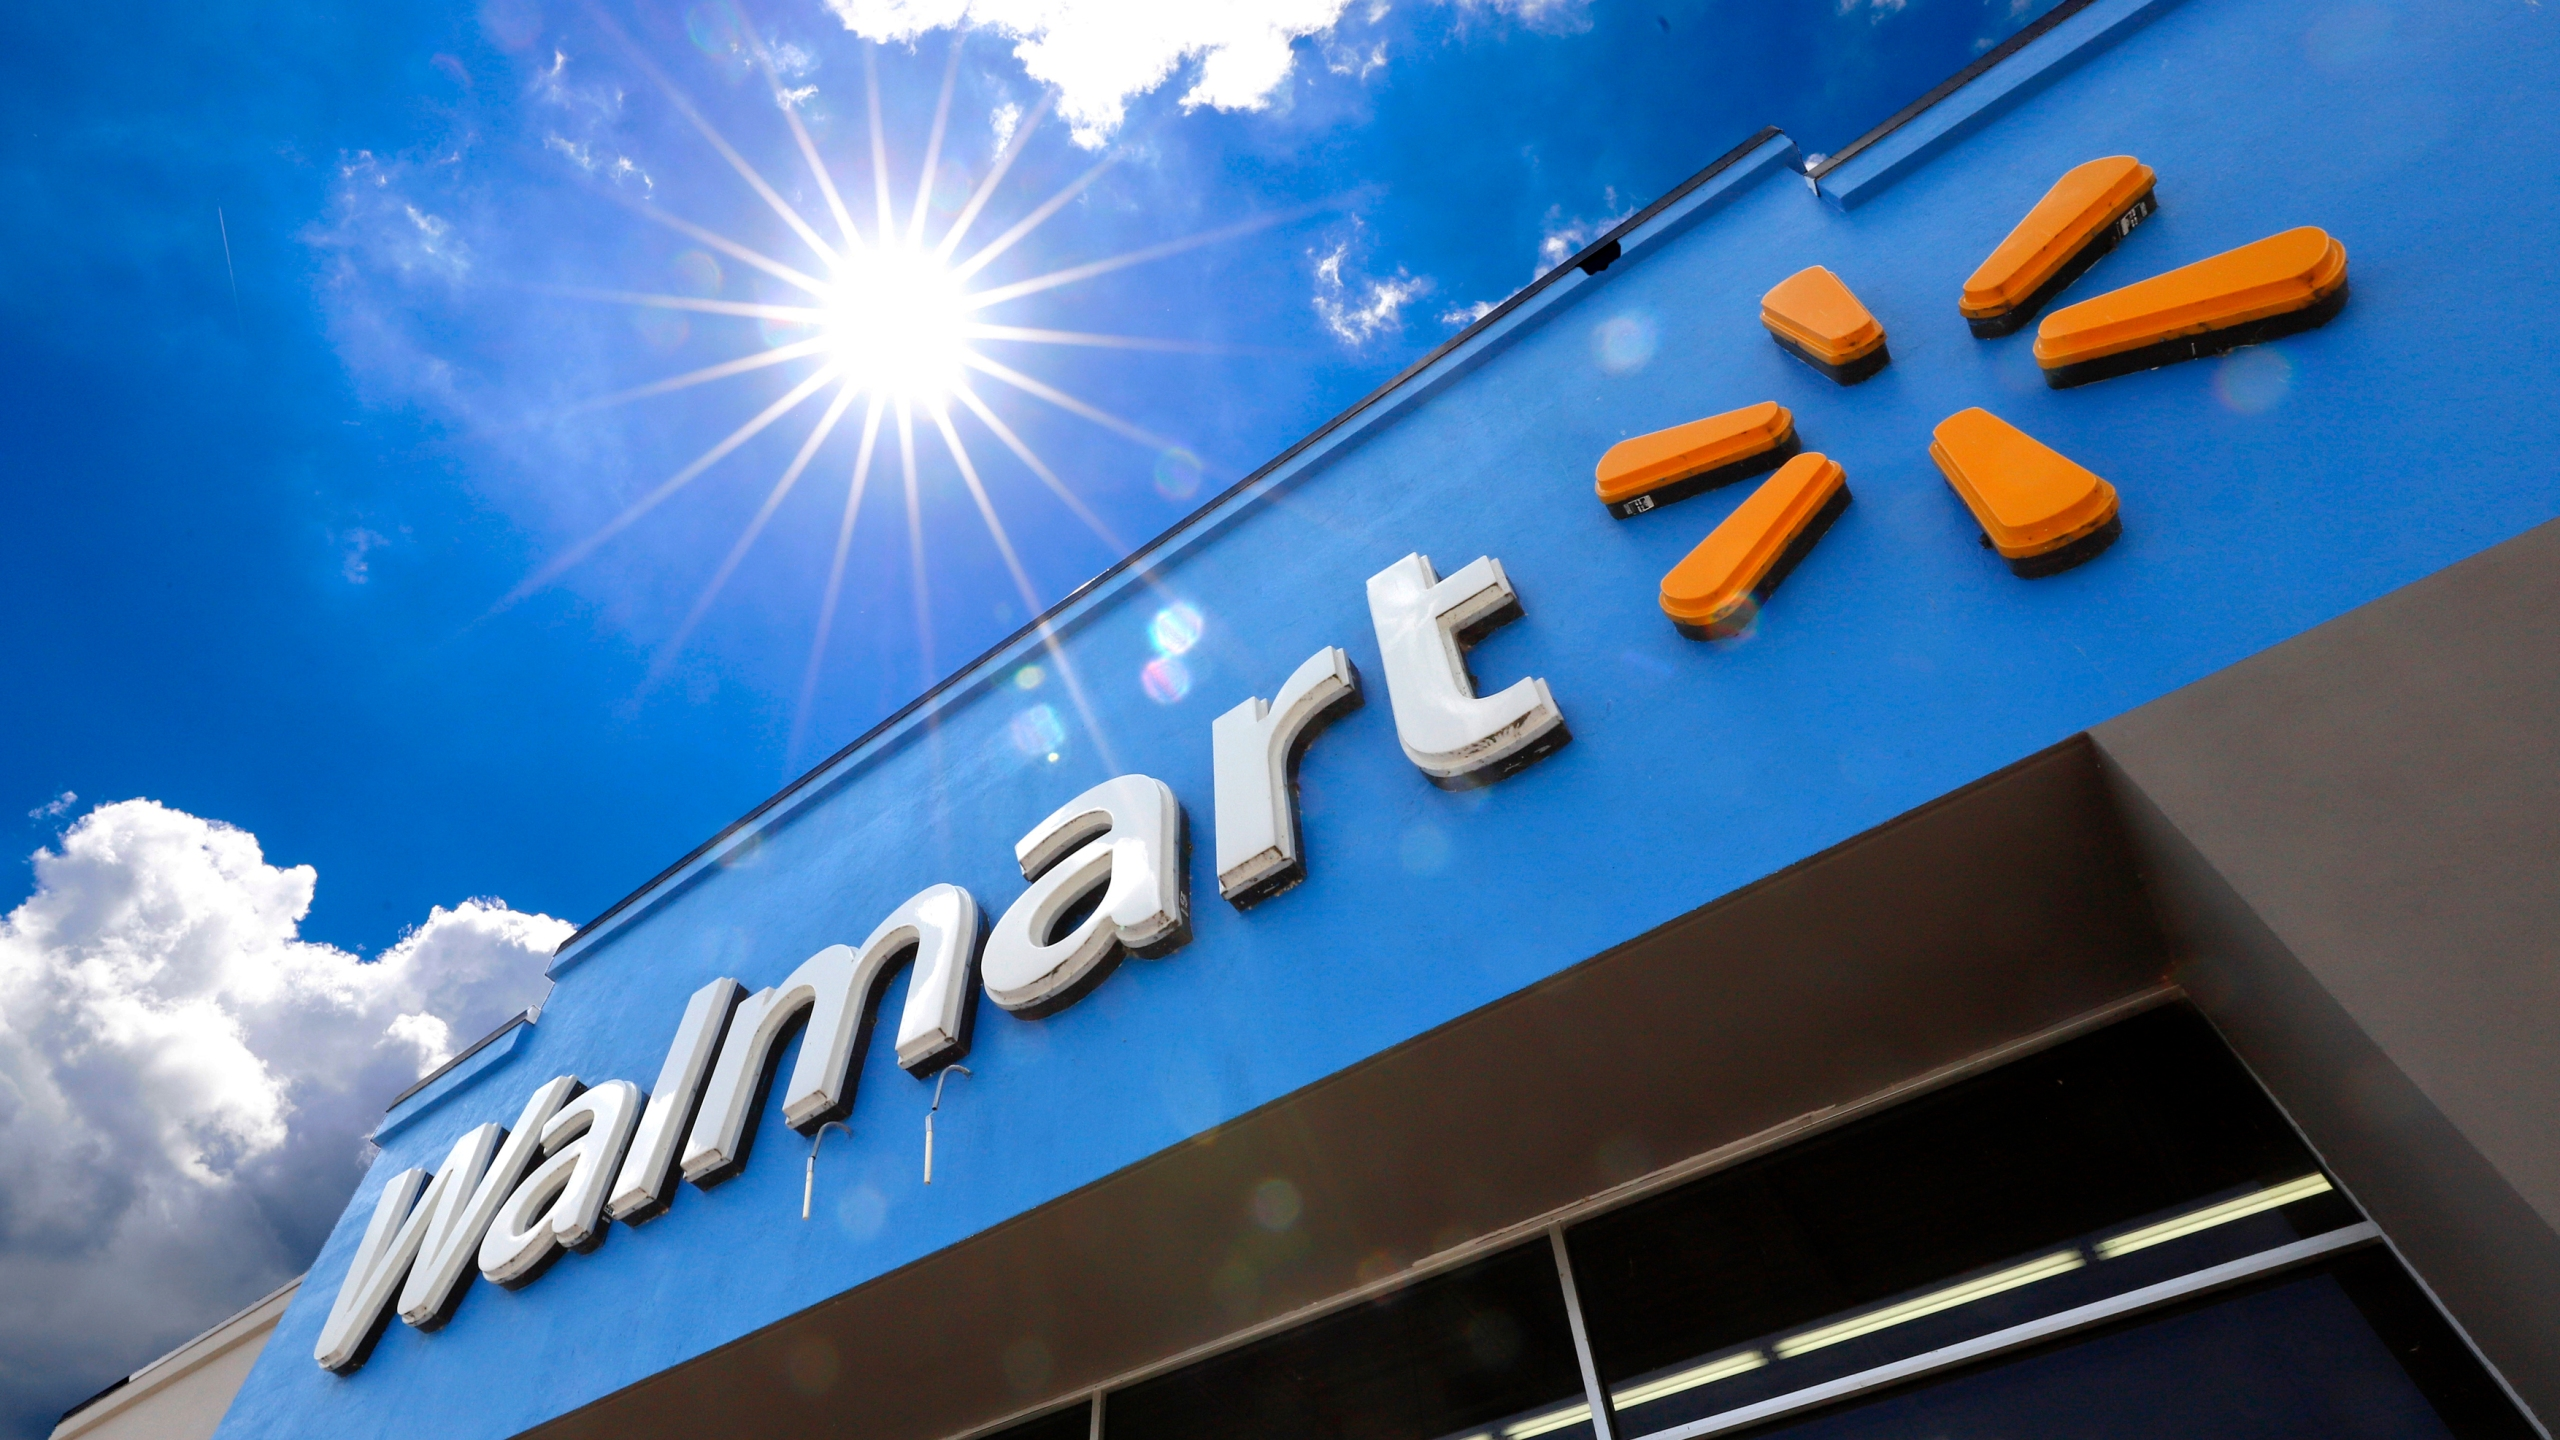 This June 25, 2019, file photo shows the entrance to a Walmart in Pittsburgh. Walmart is spreading out its traditional one-day Black Friday deals over three weekends in November 2020 in an effort to reduce crowds in its stores amid the coronavirus pandemic. (AP Photo/Gene J. Puskar, File)